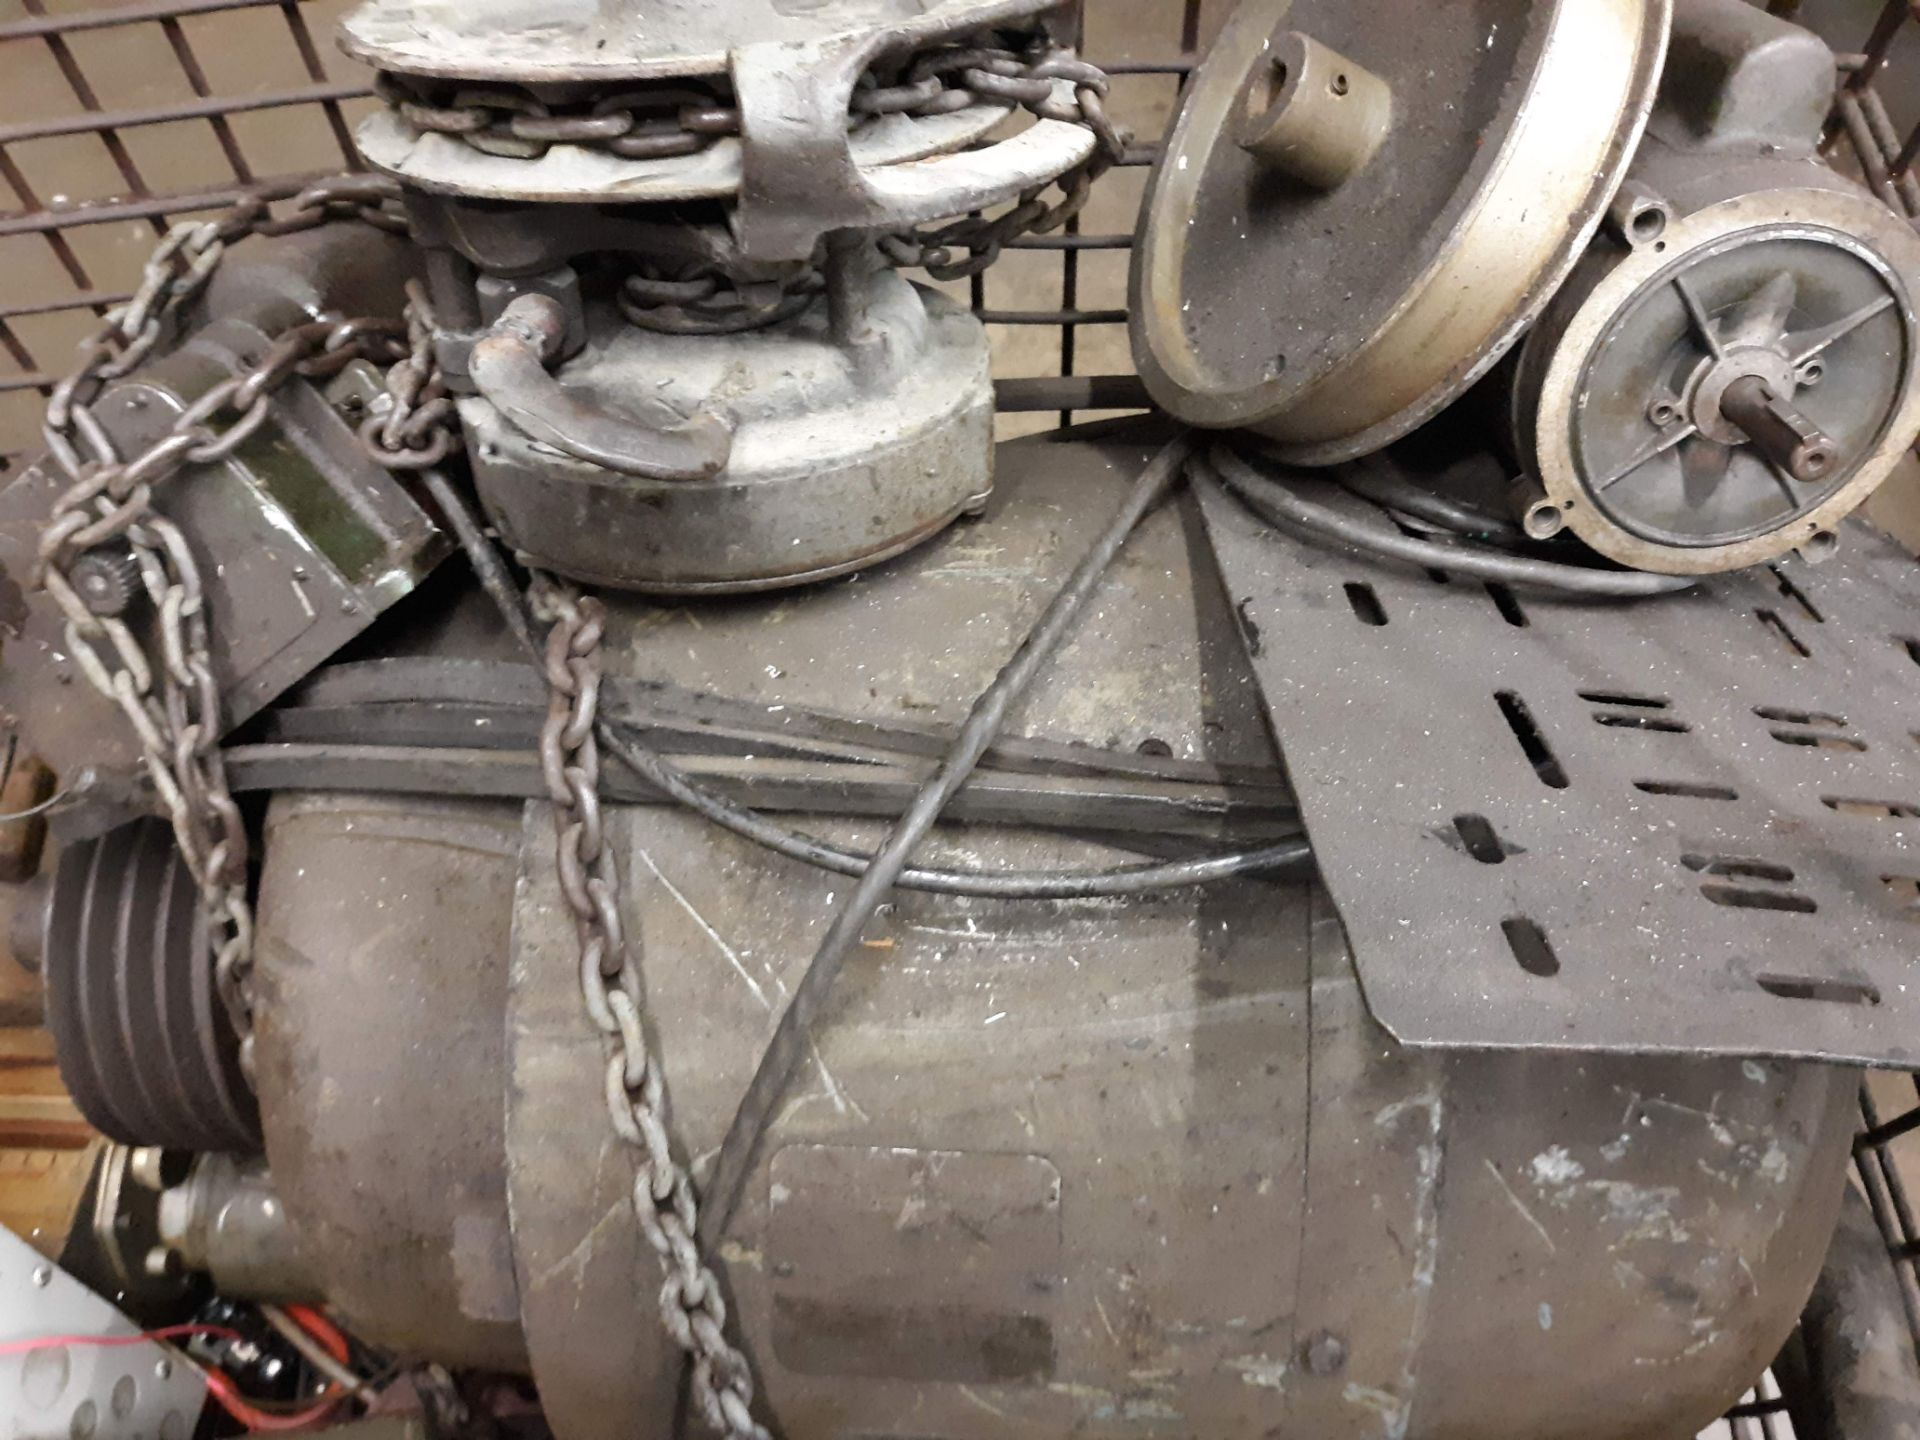 Lot 1003 - BASKET & LARGE MOTORS (TAG UNREADABLE) (LOCATED AT: 432 COUNCIL DRIVE, FORT WAYNE, IN 46825)